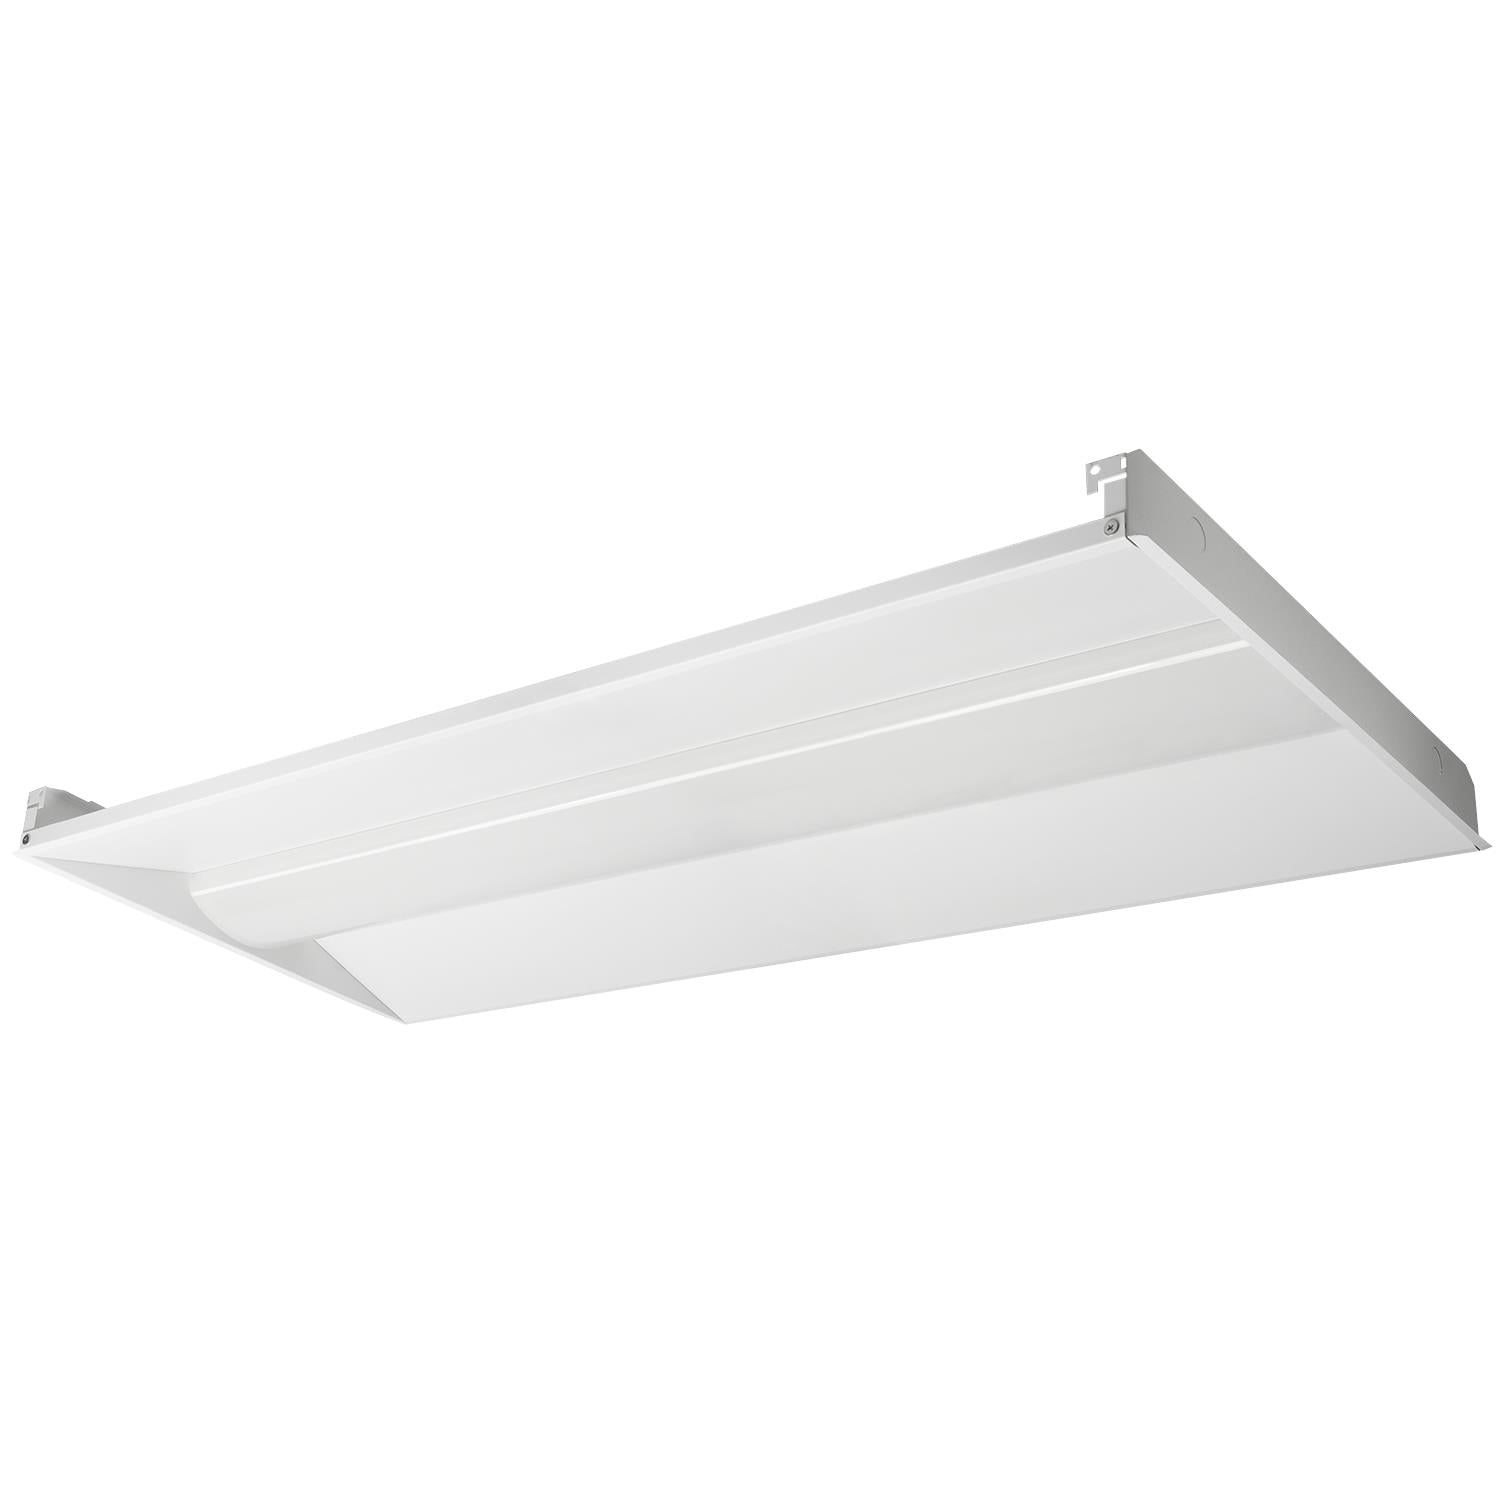 SUNLITE Fixtures 2x4 Dimmable Troffer Neutral White 3500K 60W 120-277V